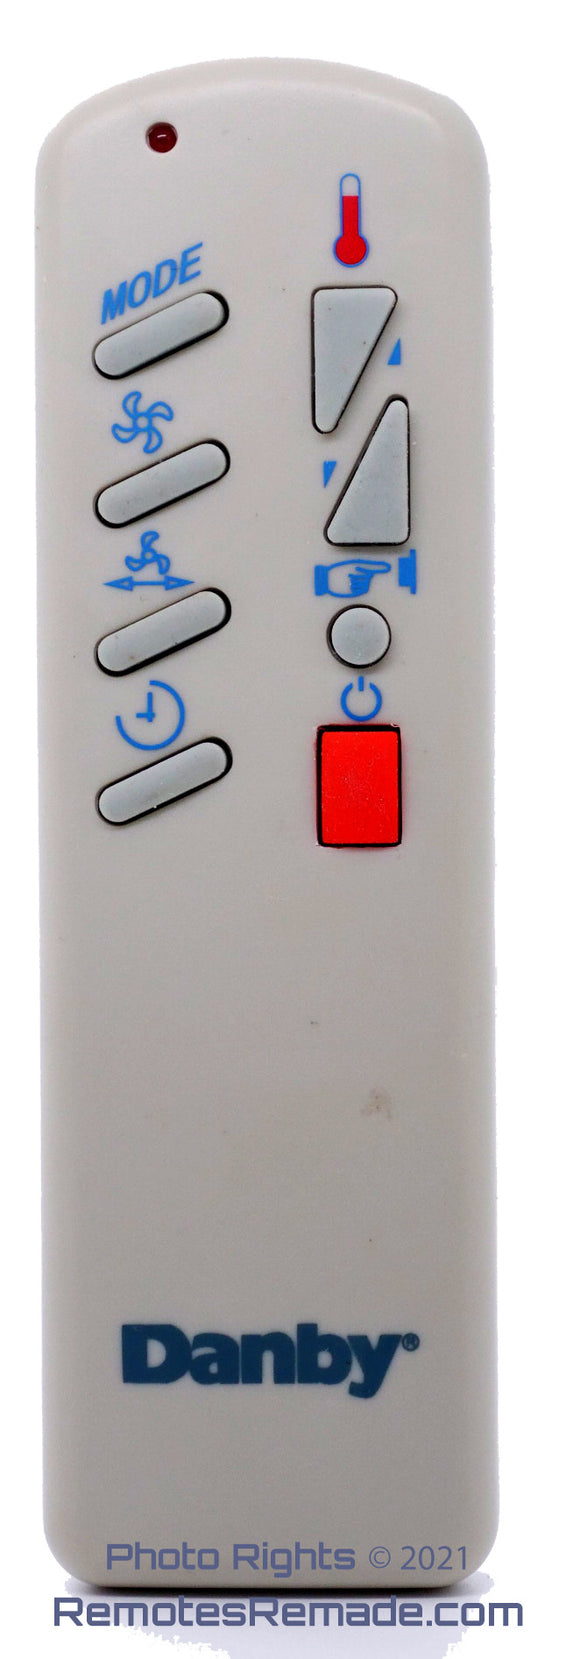 AC remote for Danby Air Conditioners Fans